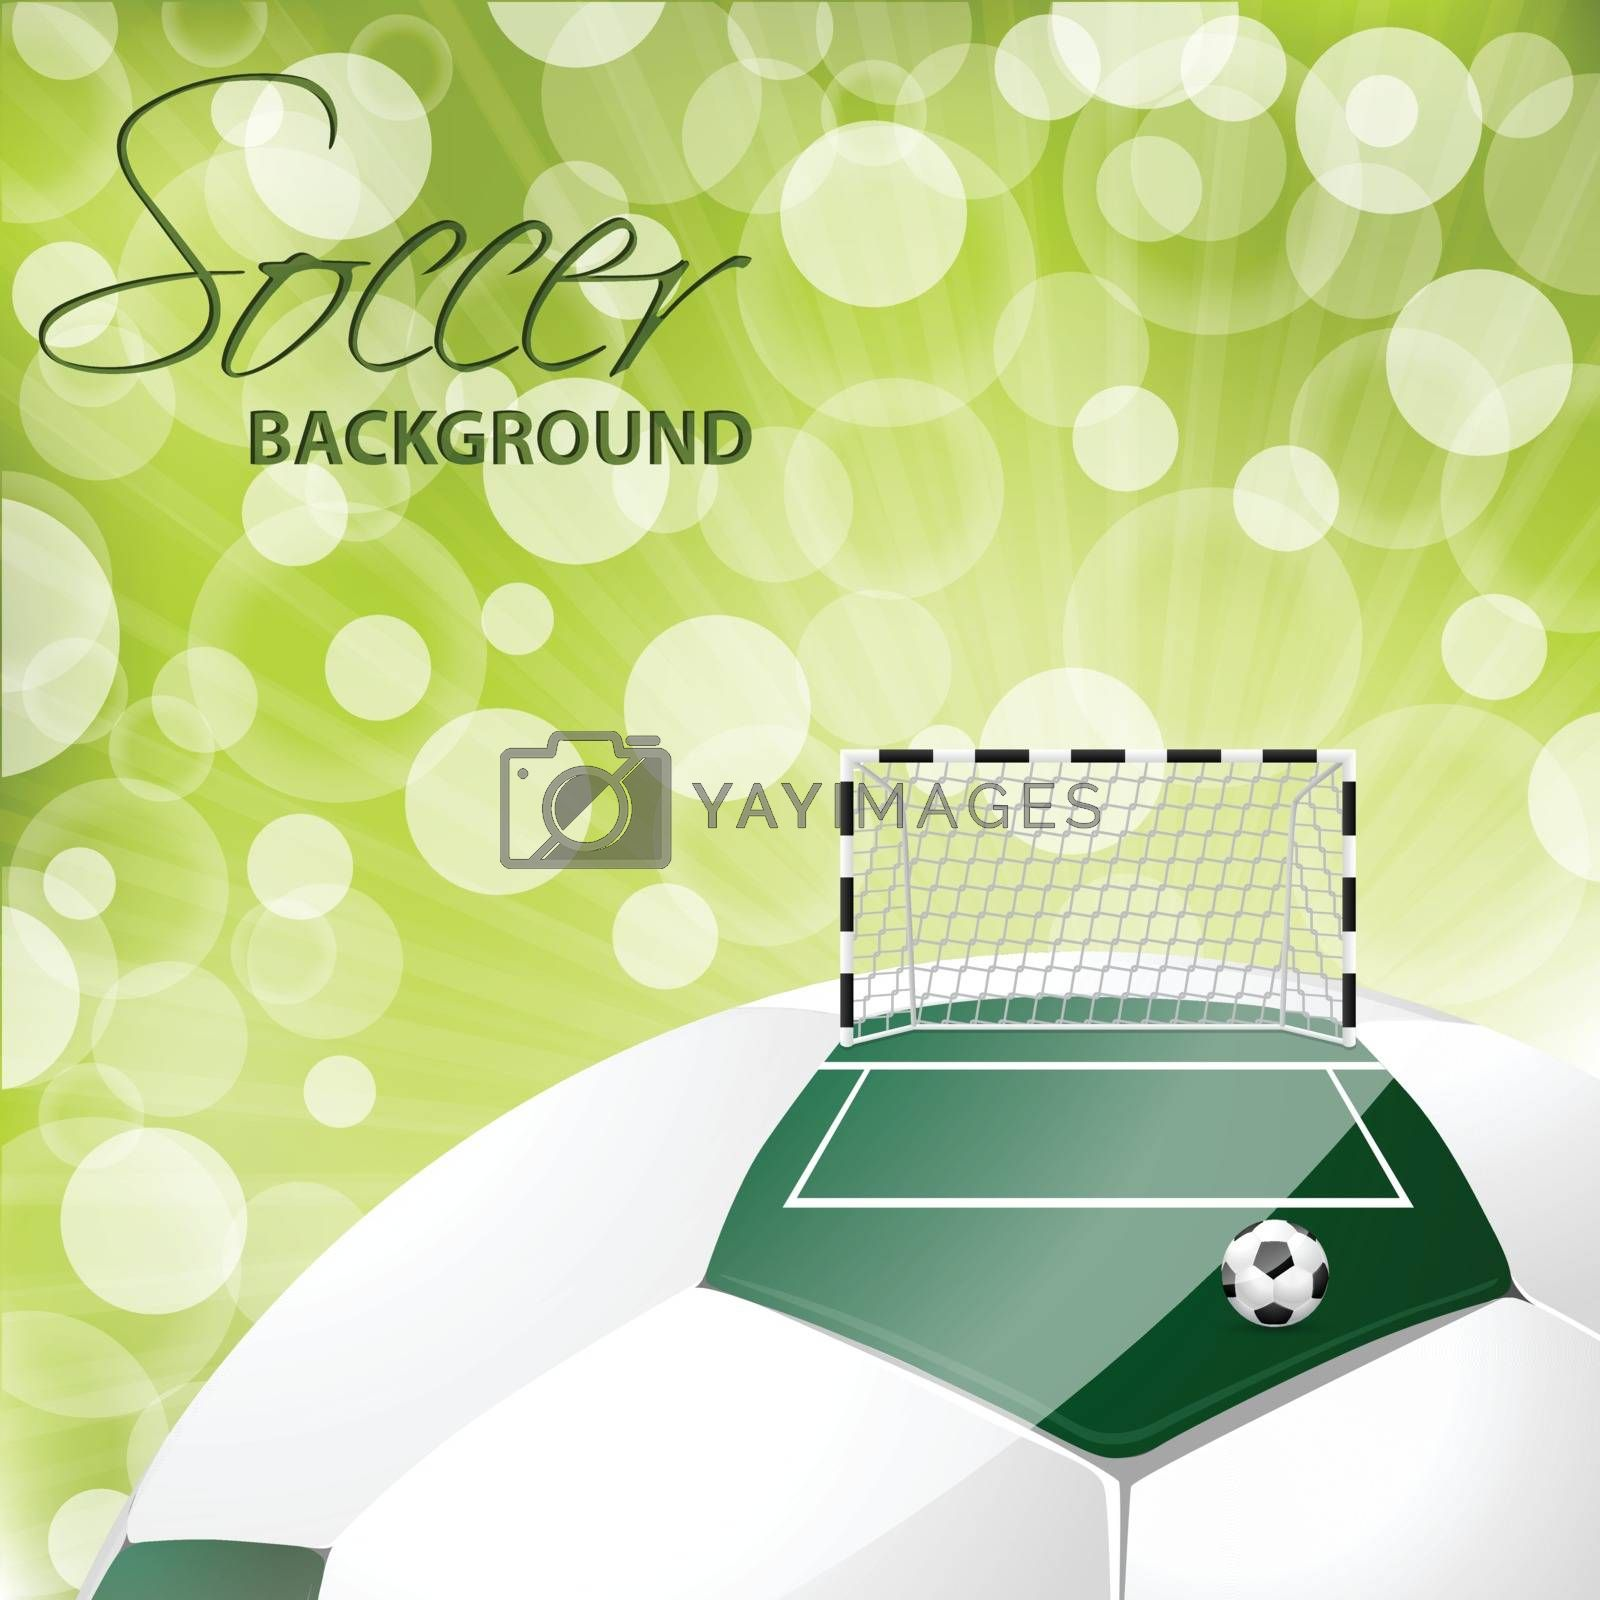 Royalty free image of Cool soccer background design by vipervxw